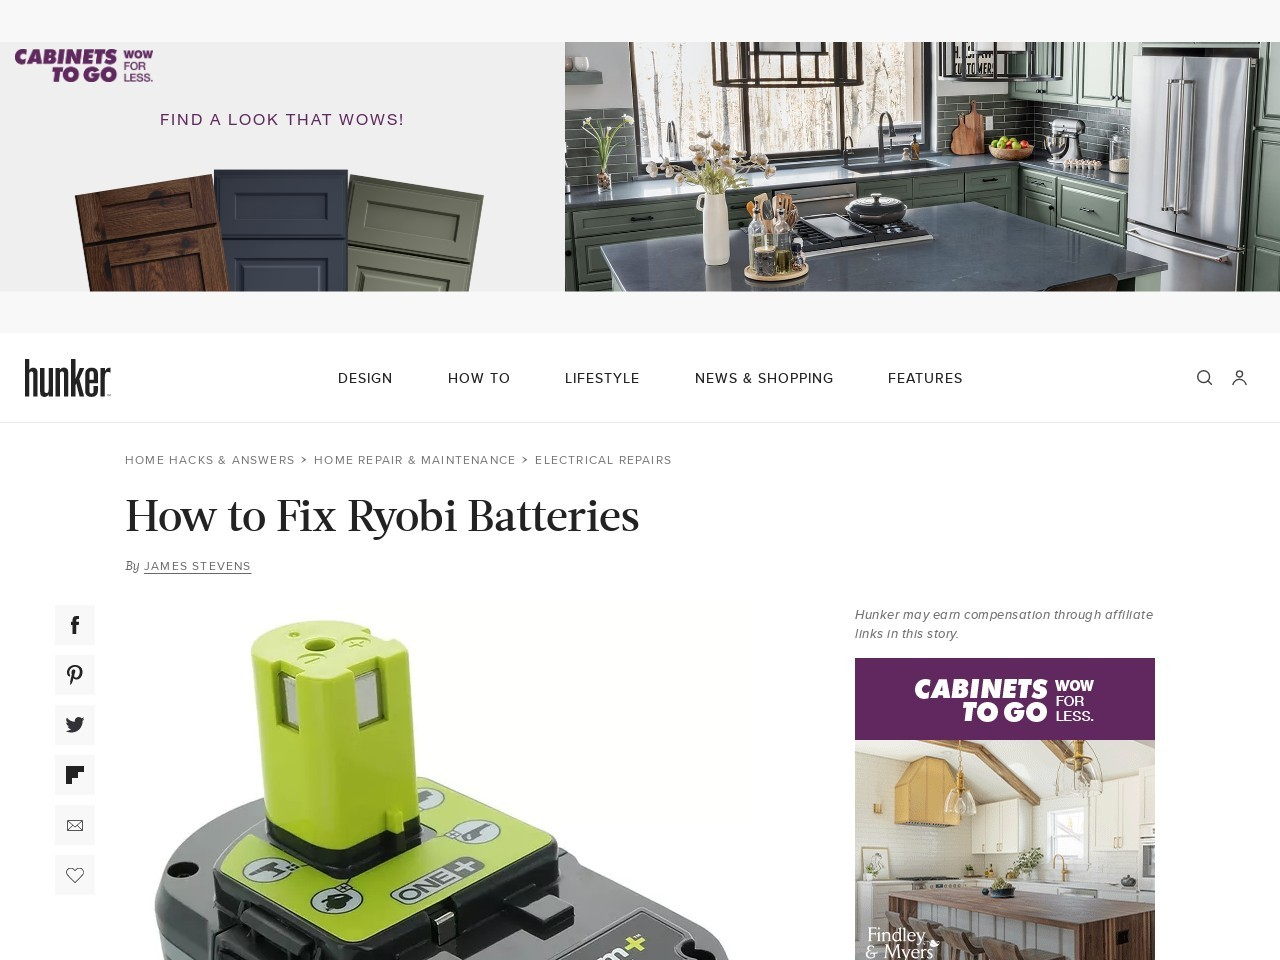 How to Rebuild a Ryobi 18V Battery. Ryobi is a large power tool manufacturer offering consumers affordable, innovative products, according to Ryobi. Ryobi produces a range of new products that operate on single-cell lithium ion batteries, but older models and those requiring greater voltage have 18-volt battery packs. The main problem with 18-volt...